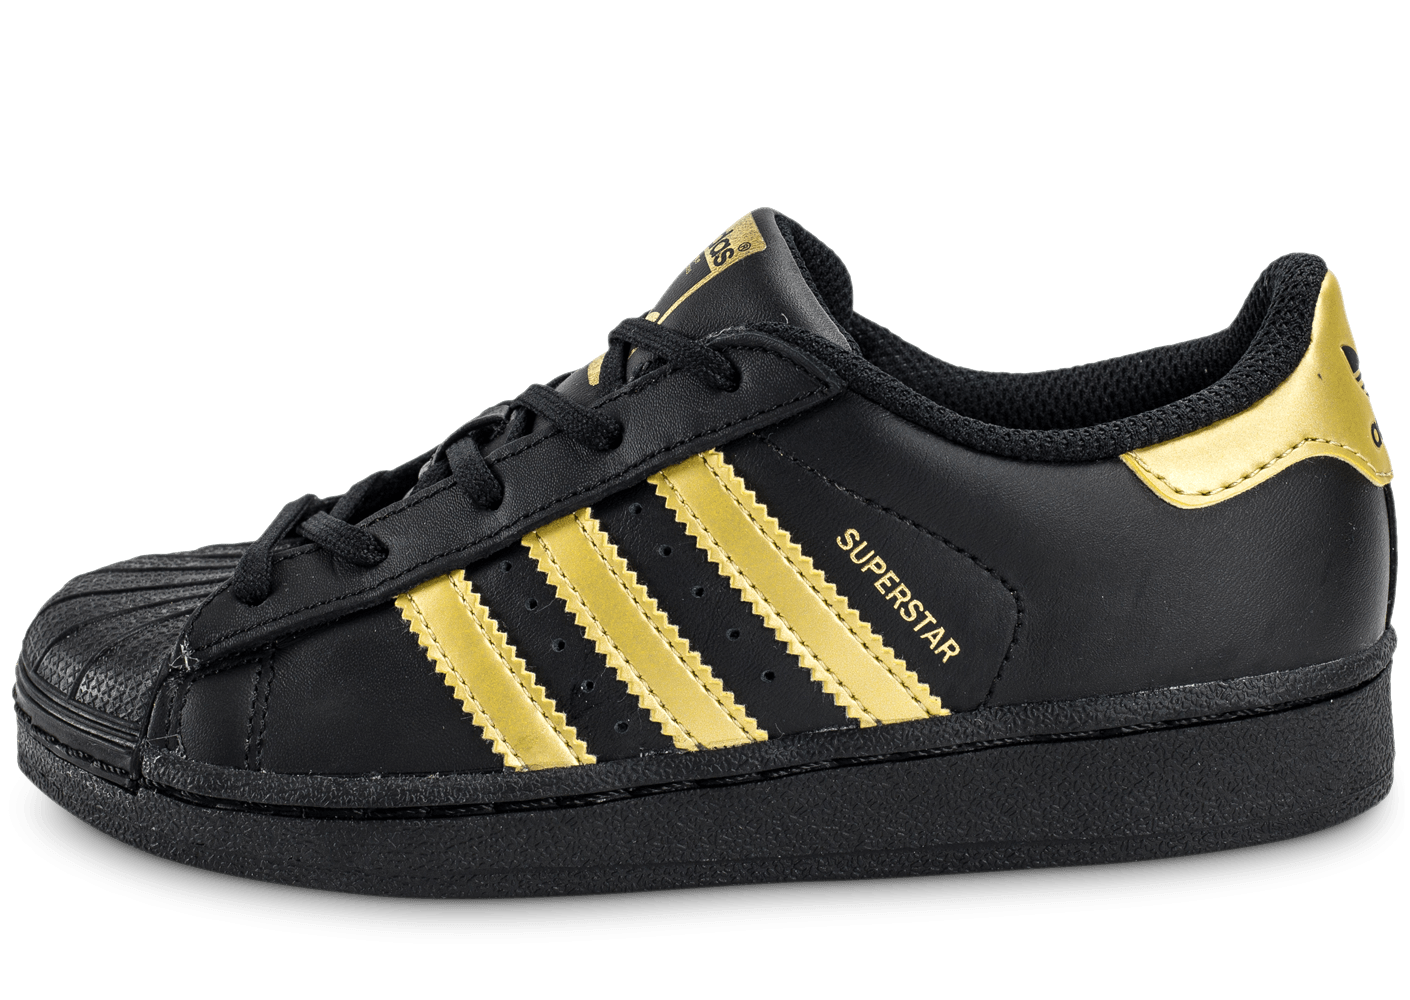 f698279f64efd adidas Superstar Enfant Black Gold - Chaussures adidas - Chausport